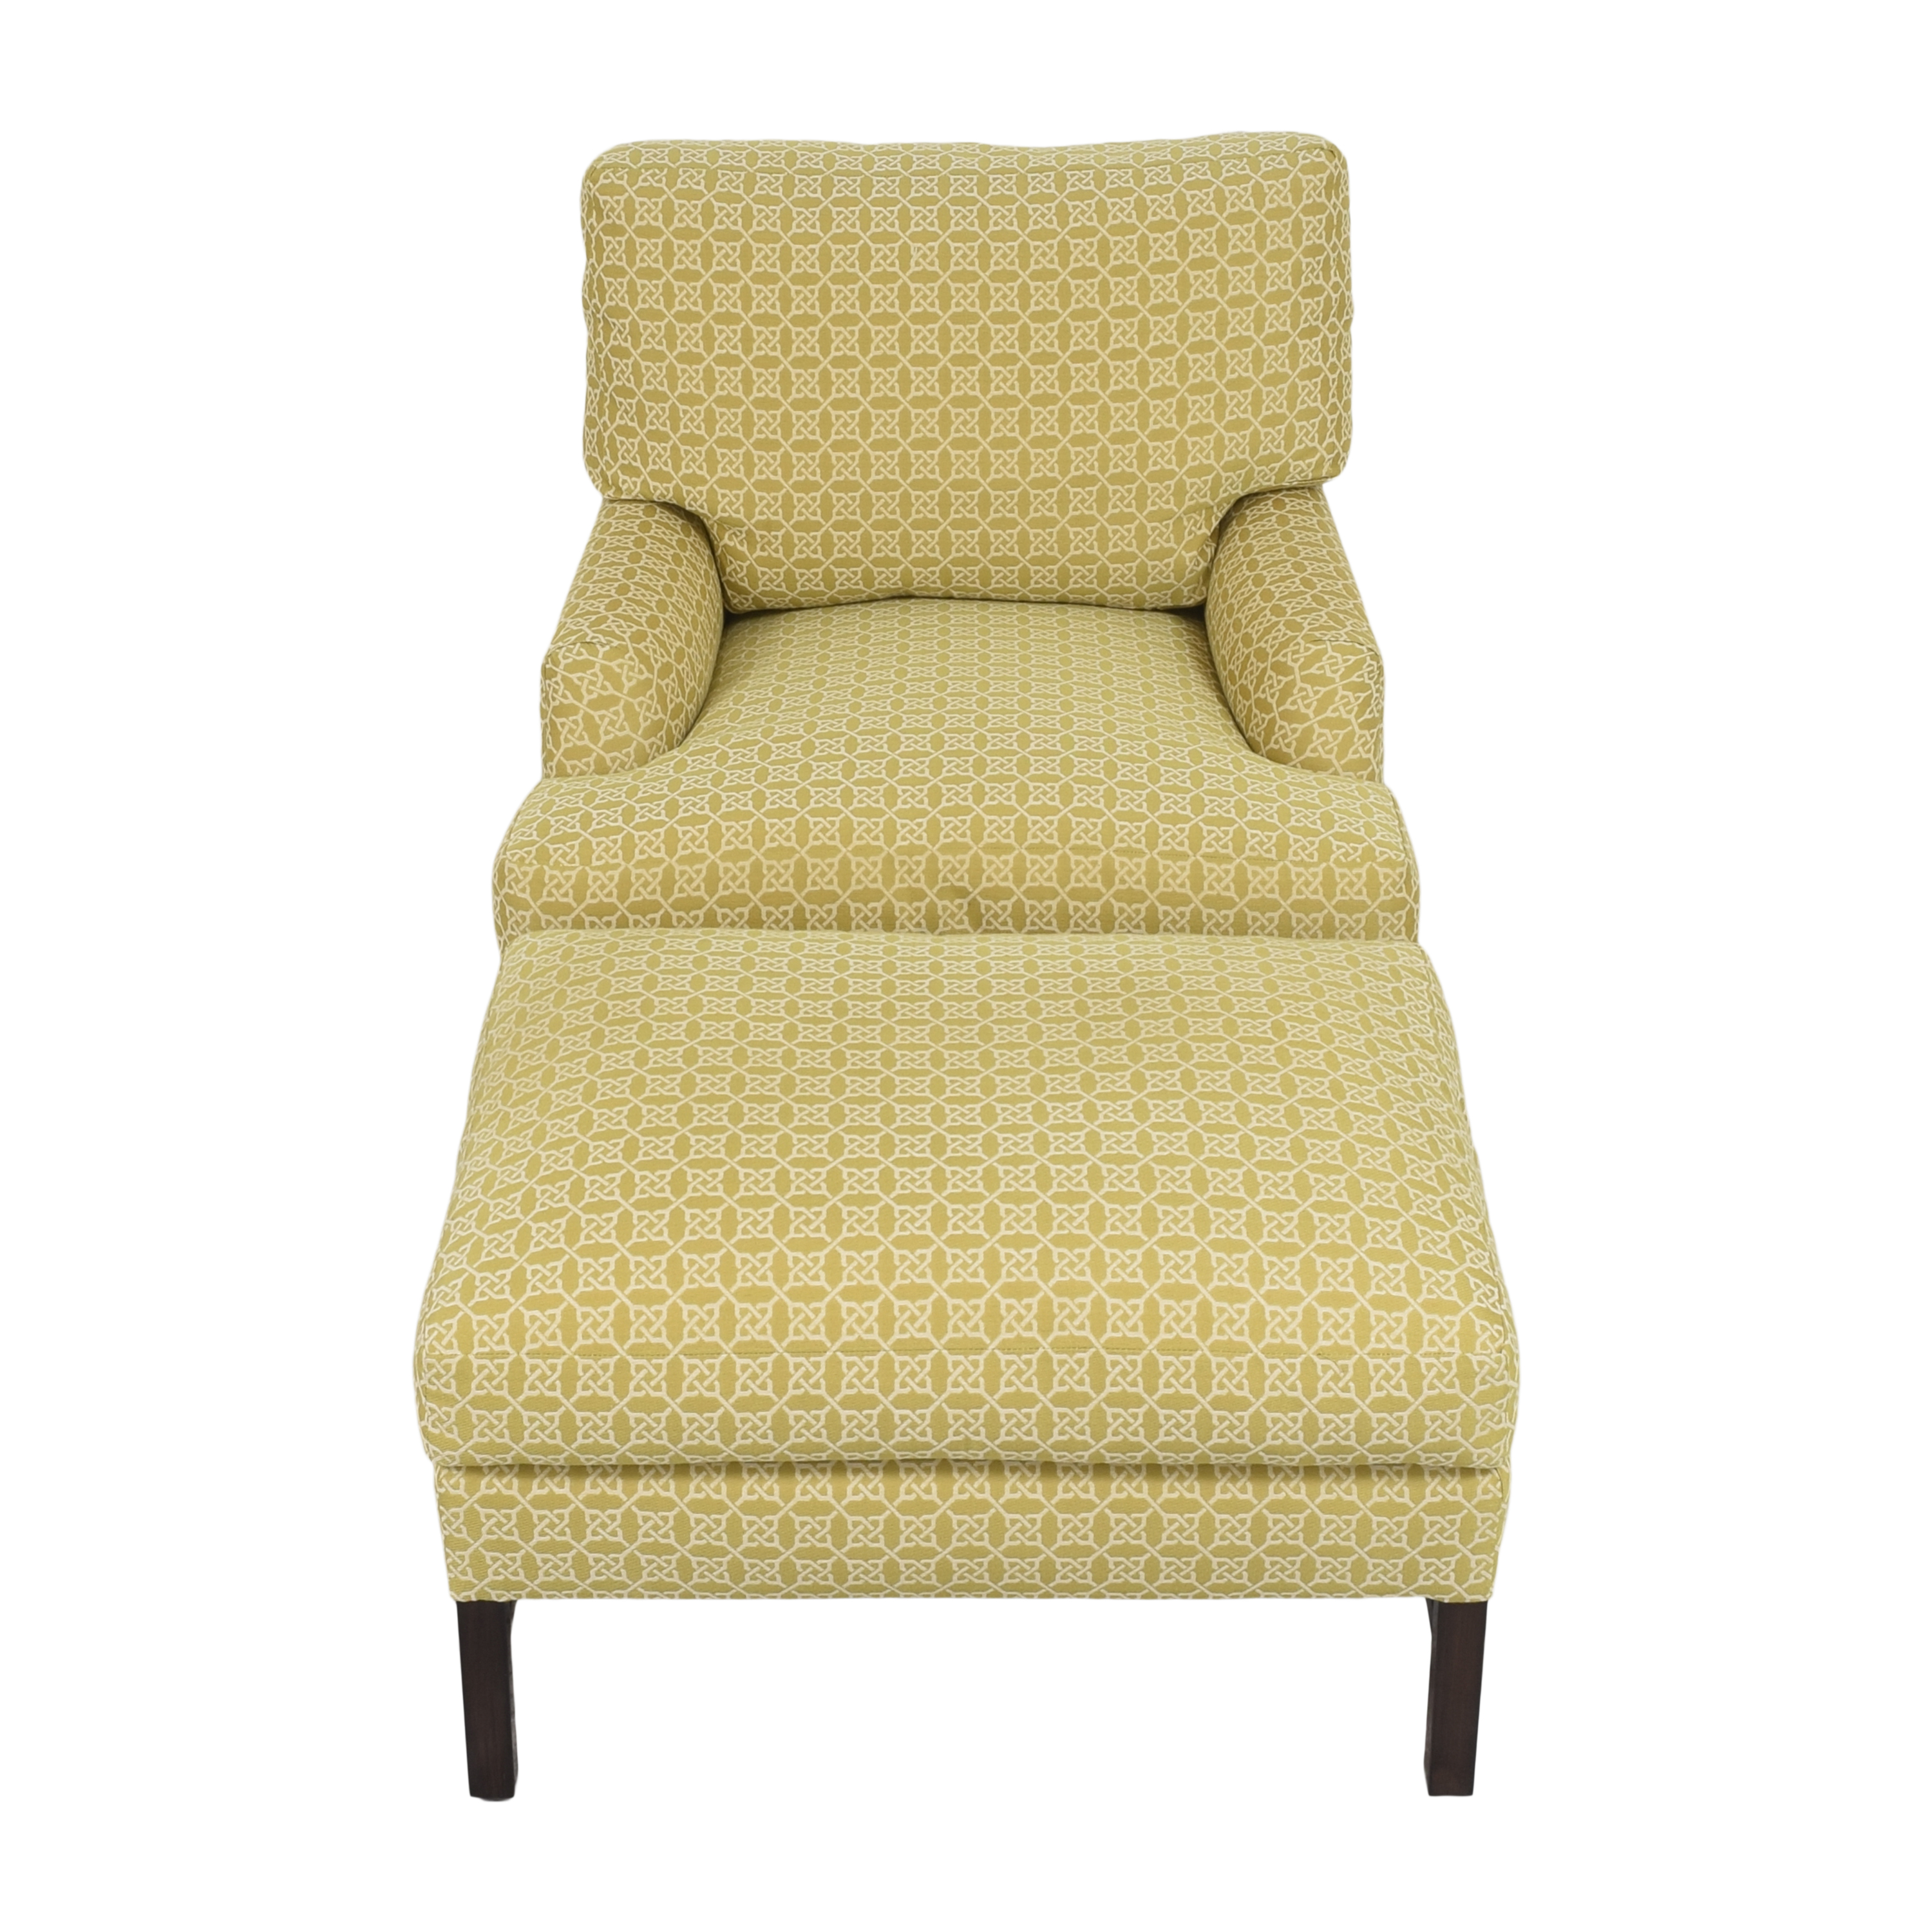 A Rudin A Rudin No 681 Chair and Ottoman second hand